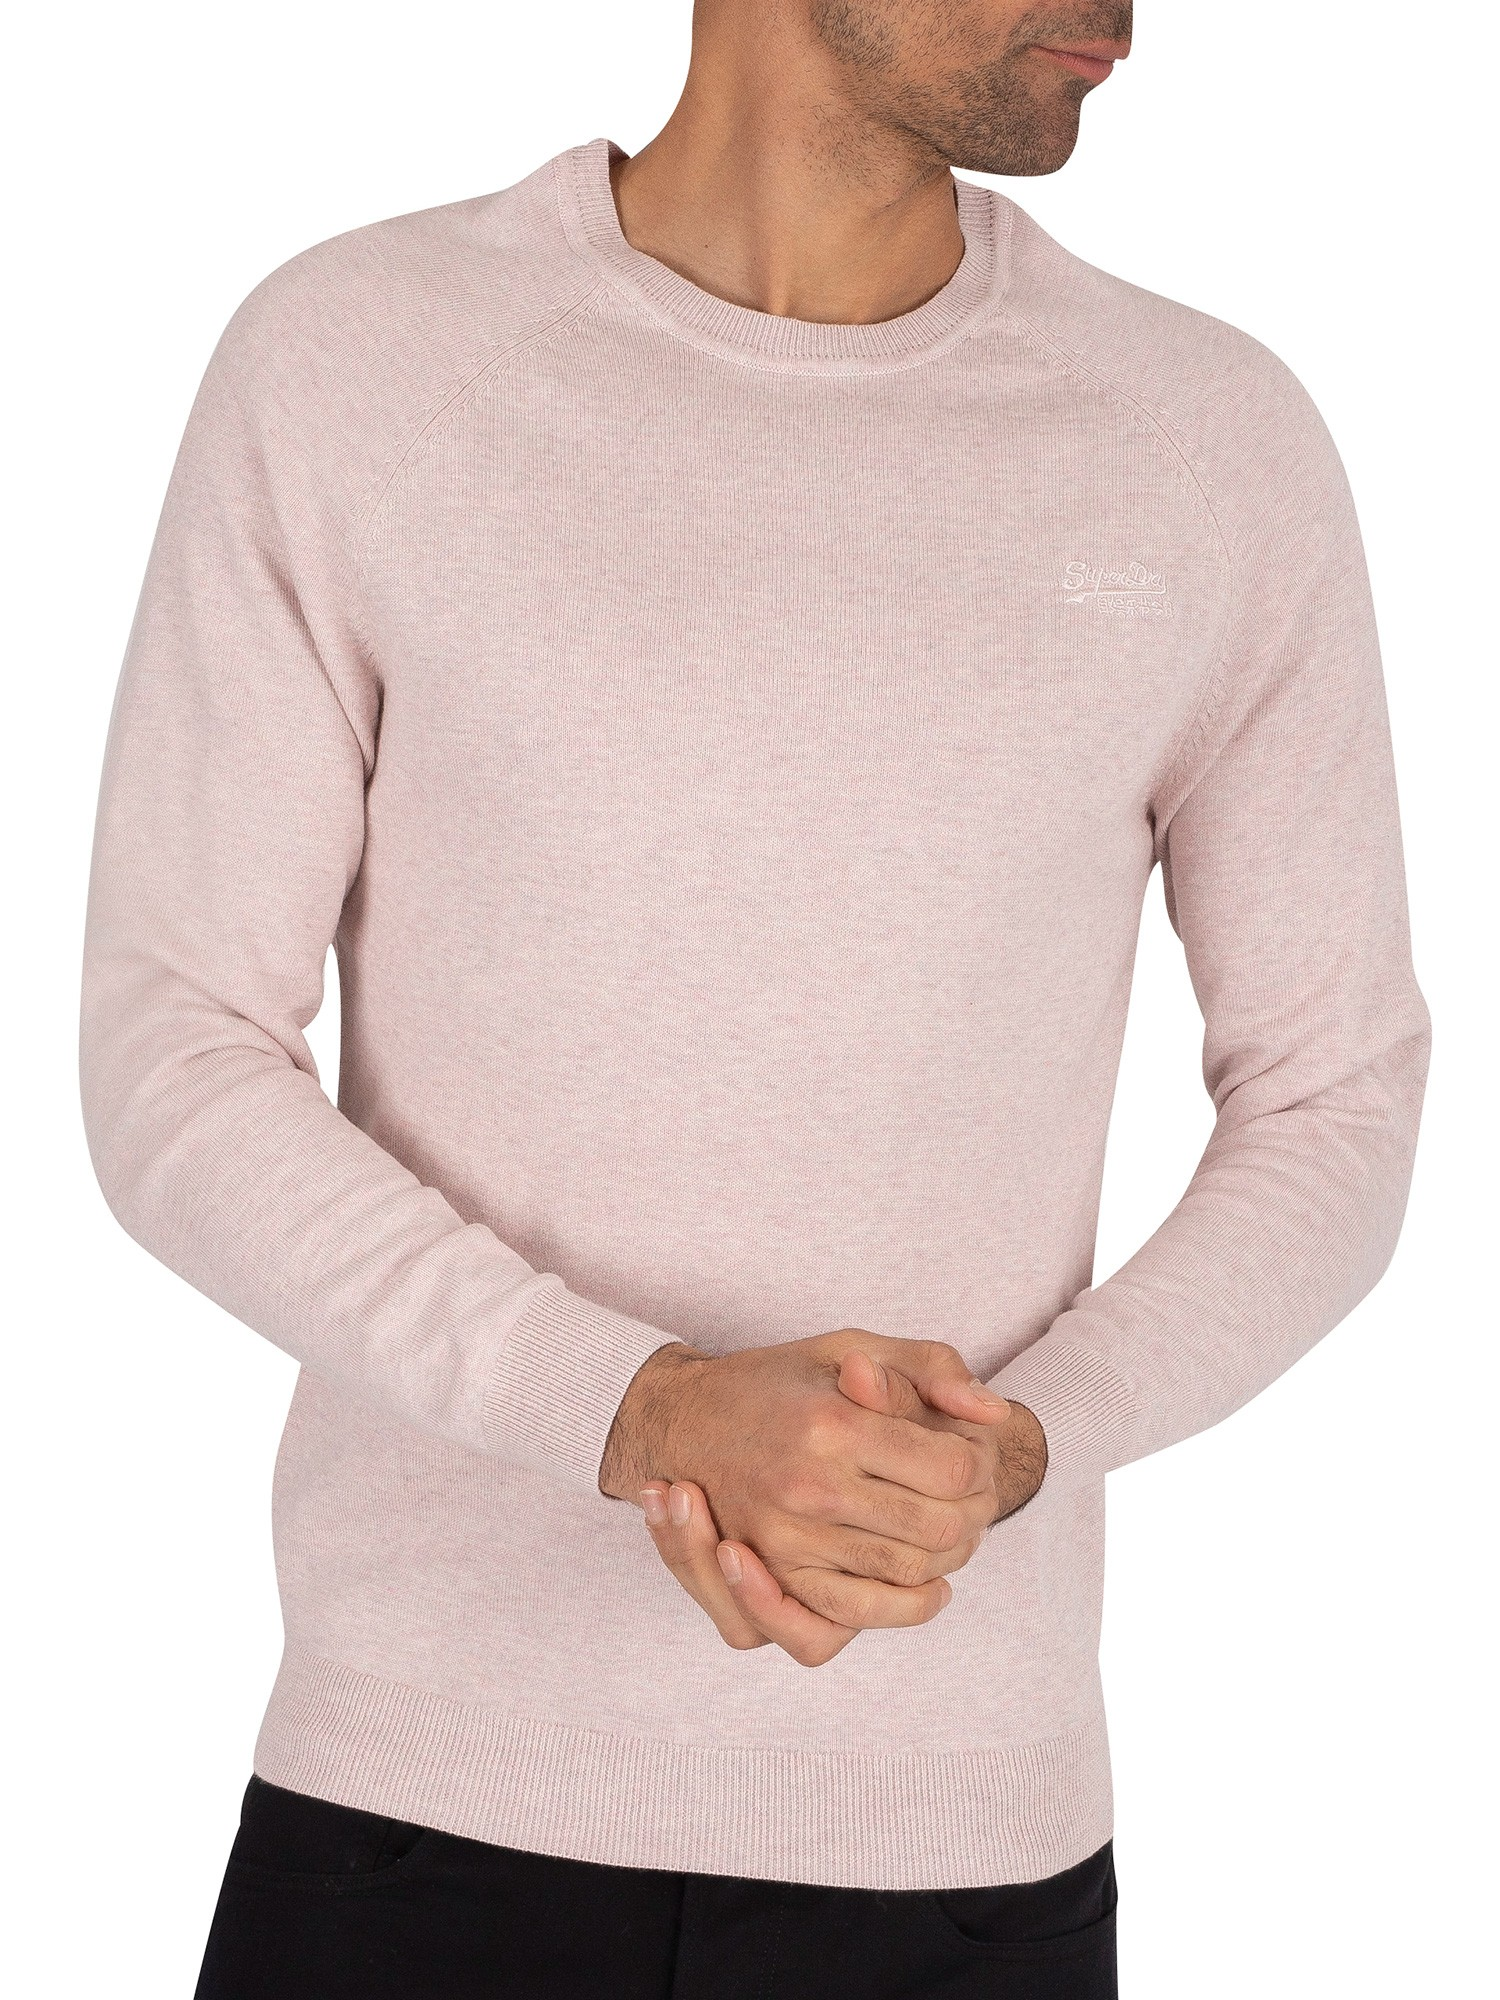 Superdry Orange Label Cotton Knit - Dusted Silver Pink Marl